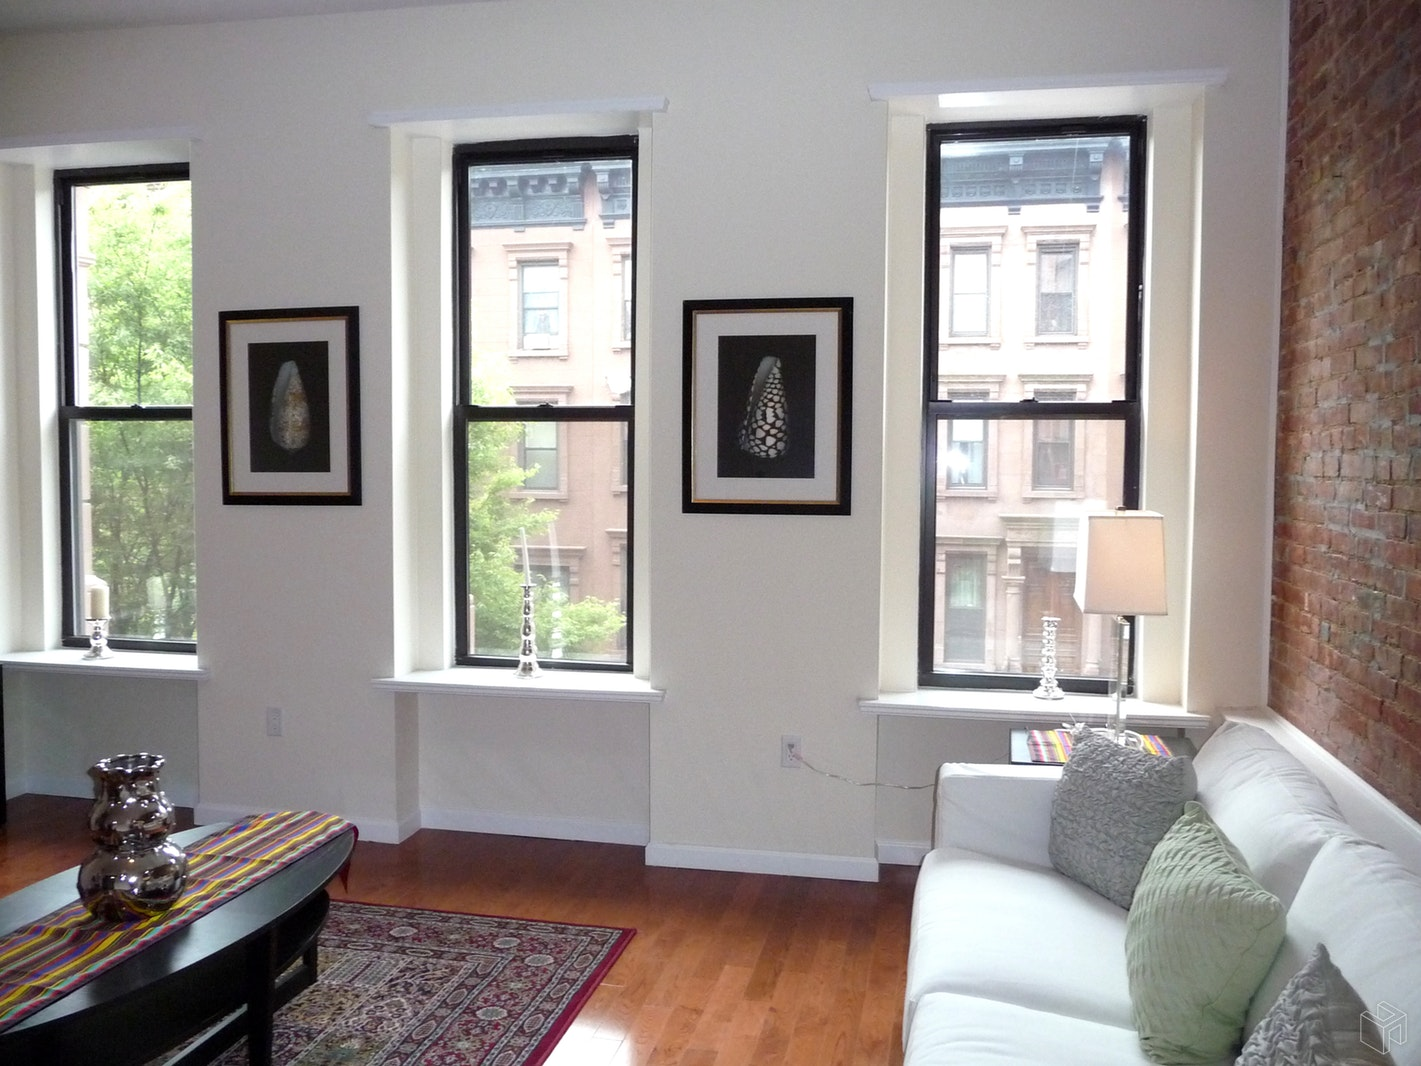 121 West 131st Street 4, Upper Manhattan, NYC, 10027, Price Not Disclosed, Rented Property, Halstead Real Estate, Photo 1